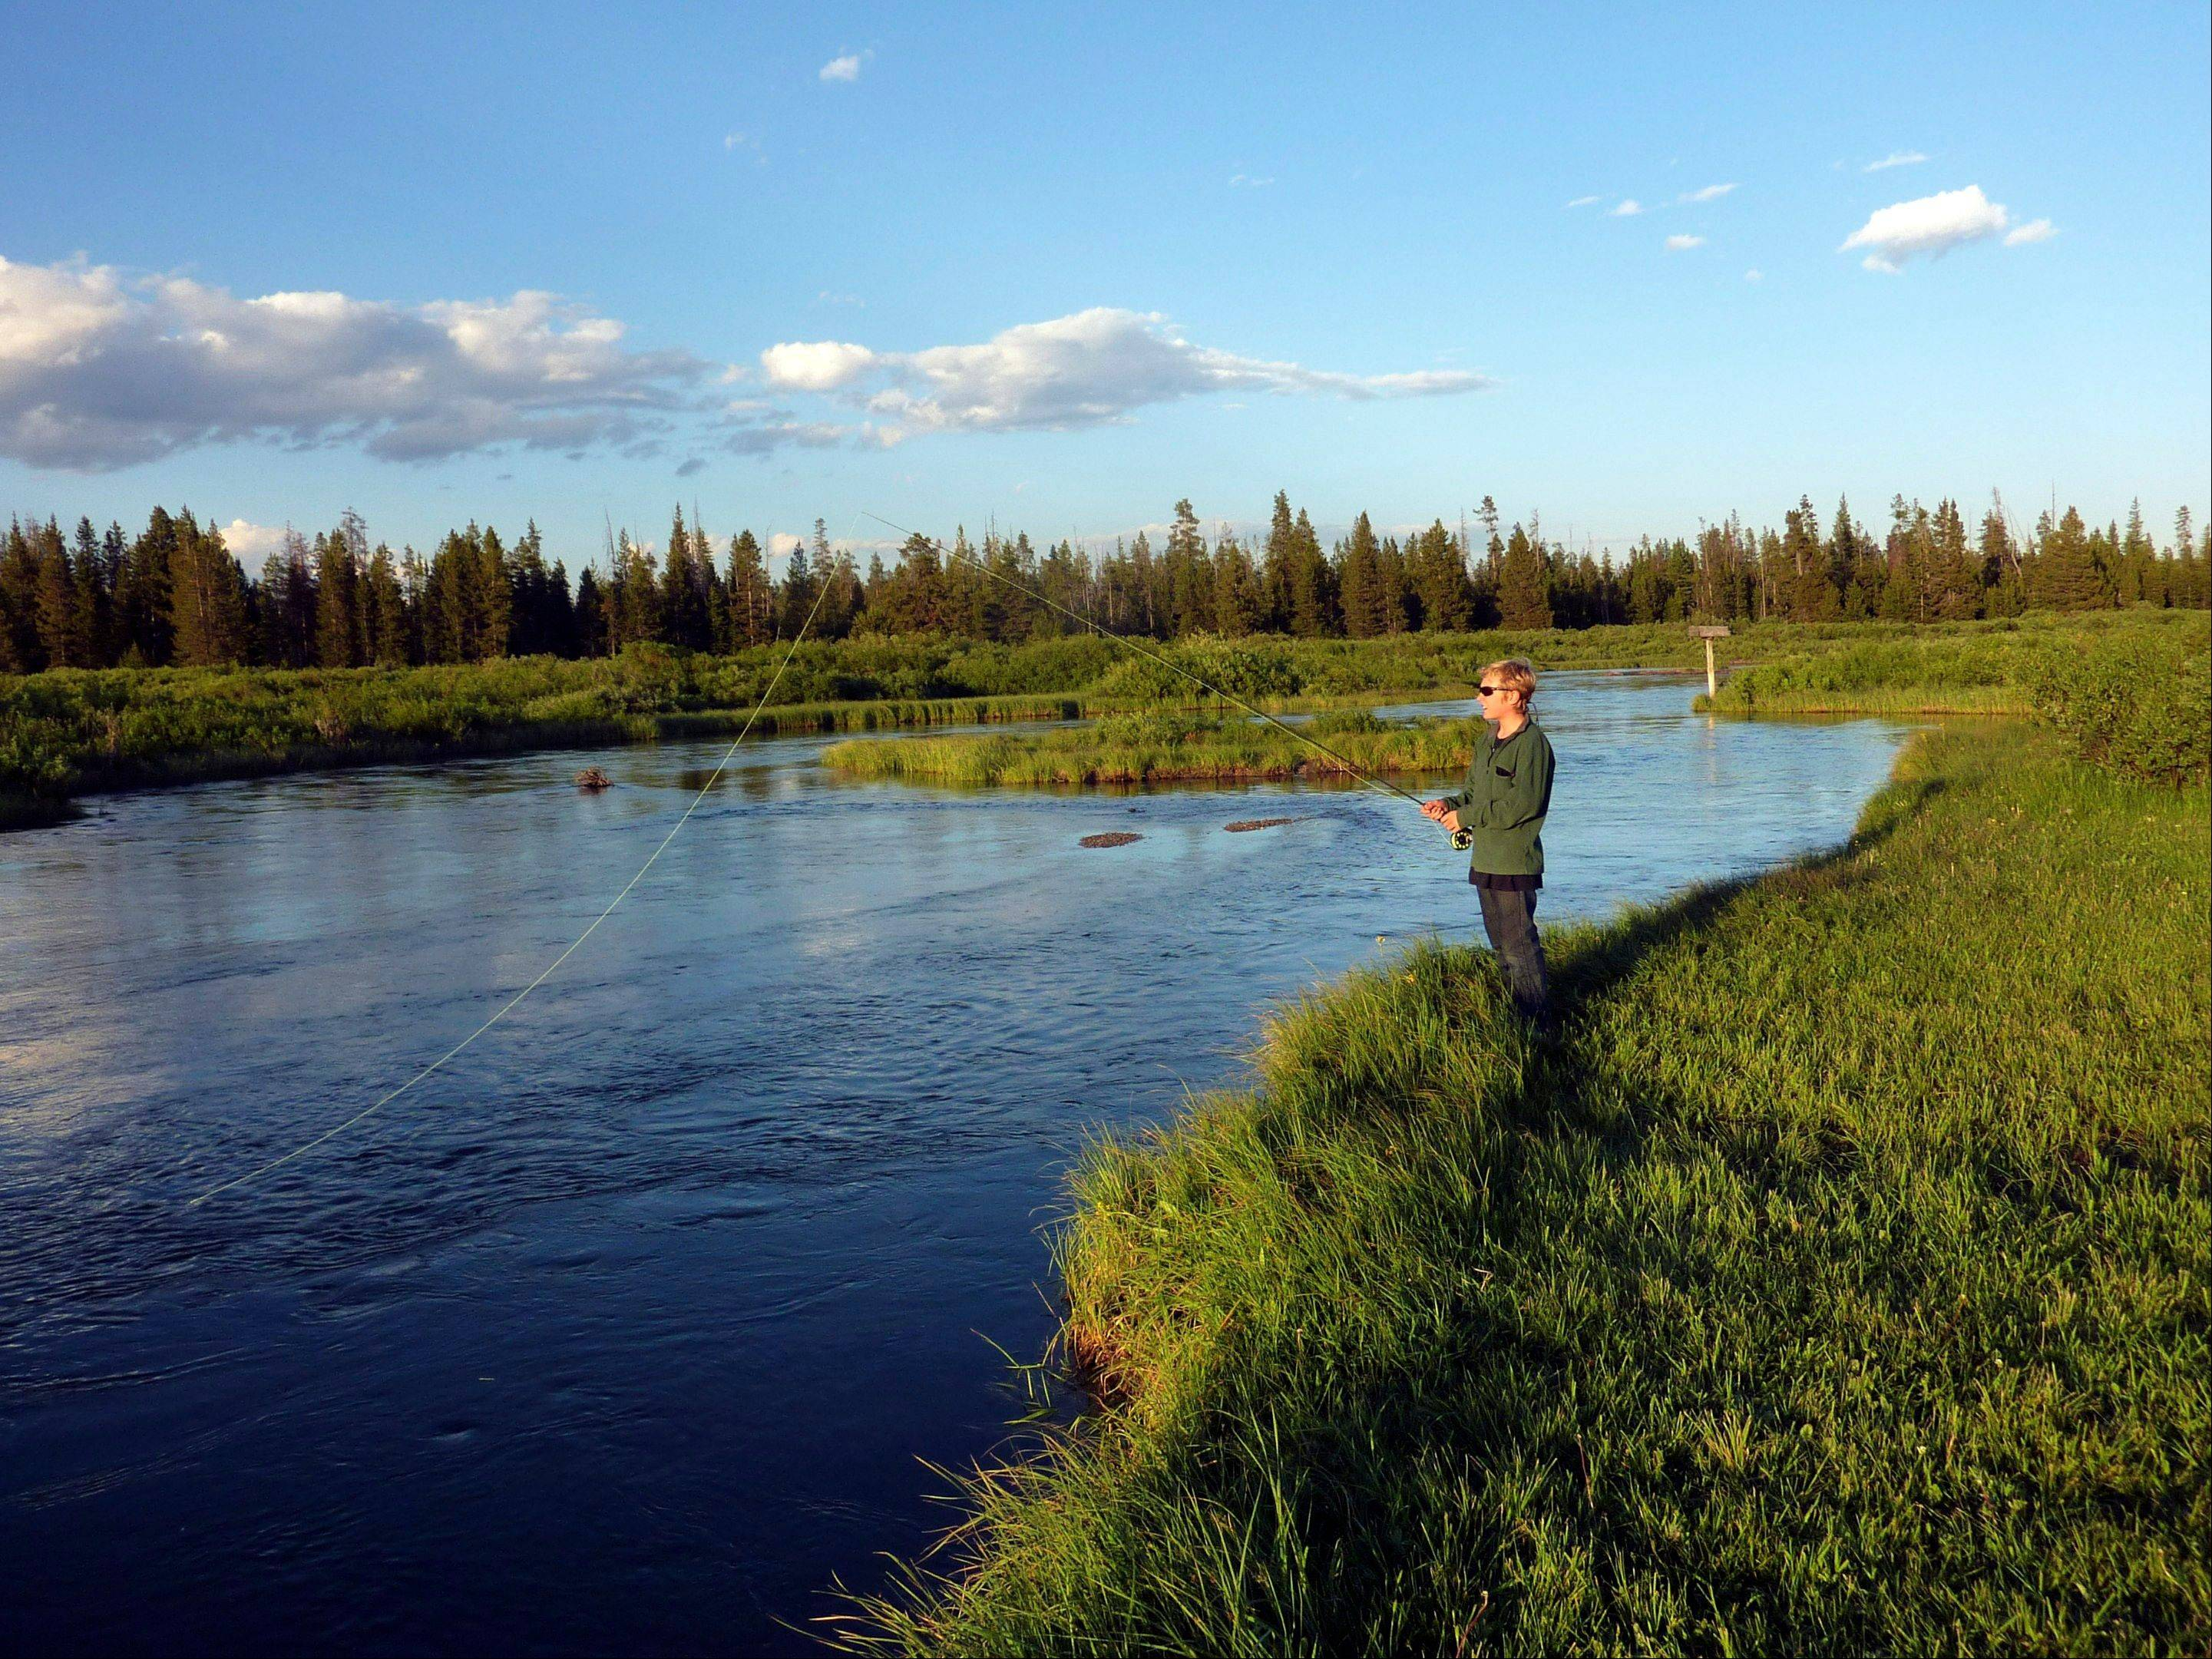 Evan Butler fishes the South Fork of the Madison River near West Yellowstone, Mont. Twin Bridges has many options for fishing locations.